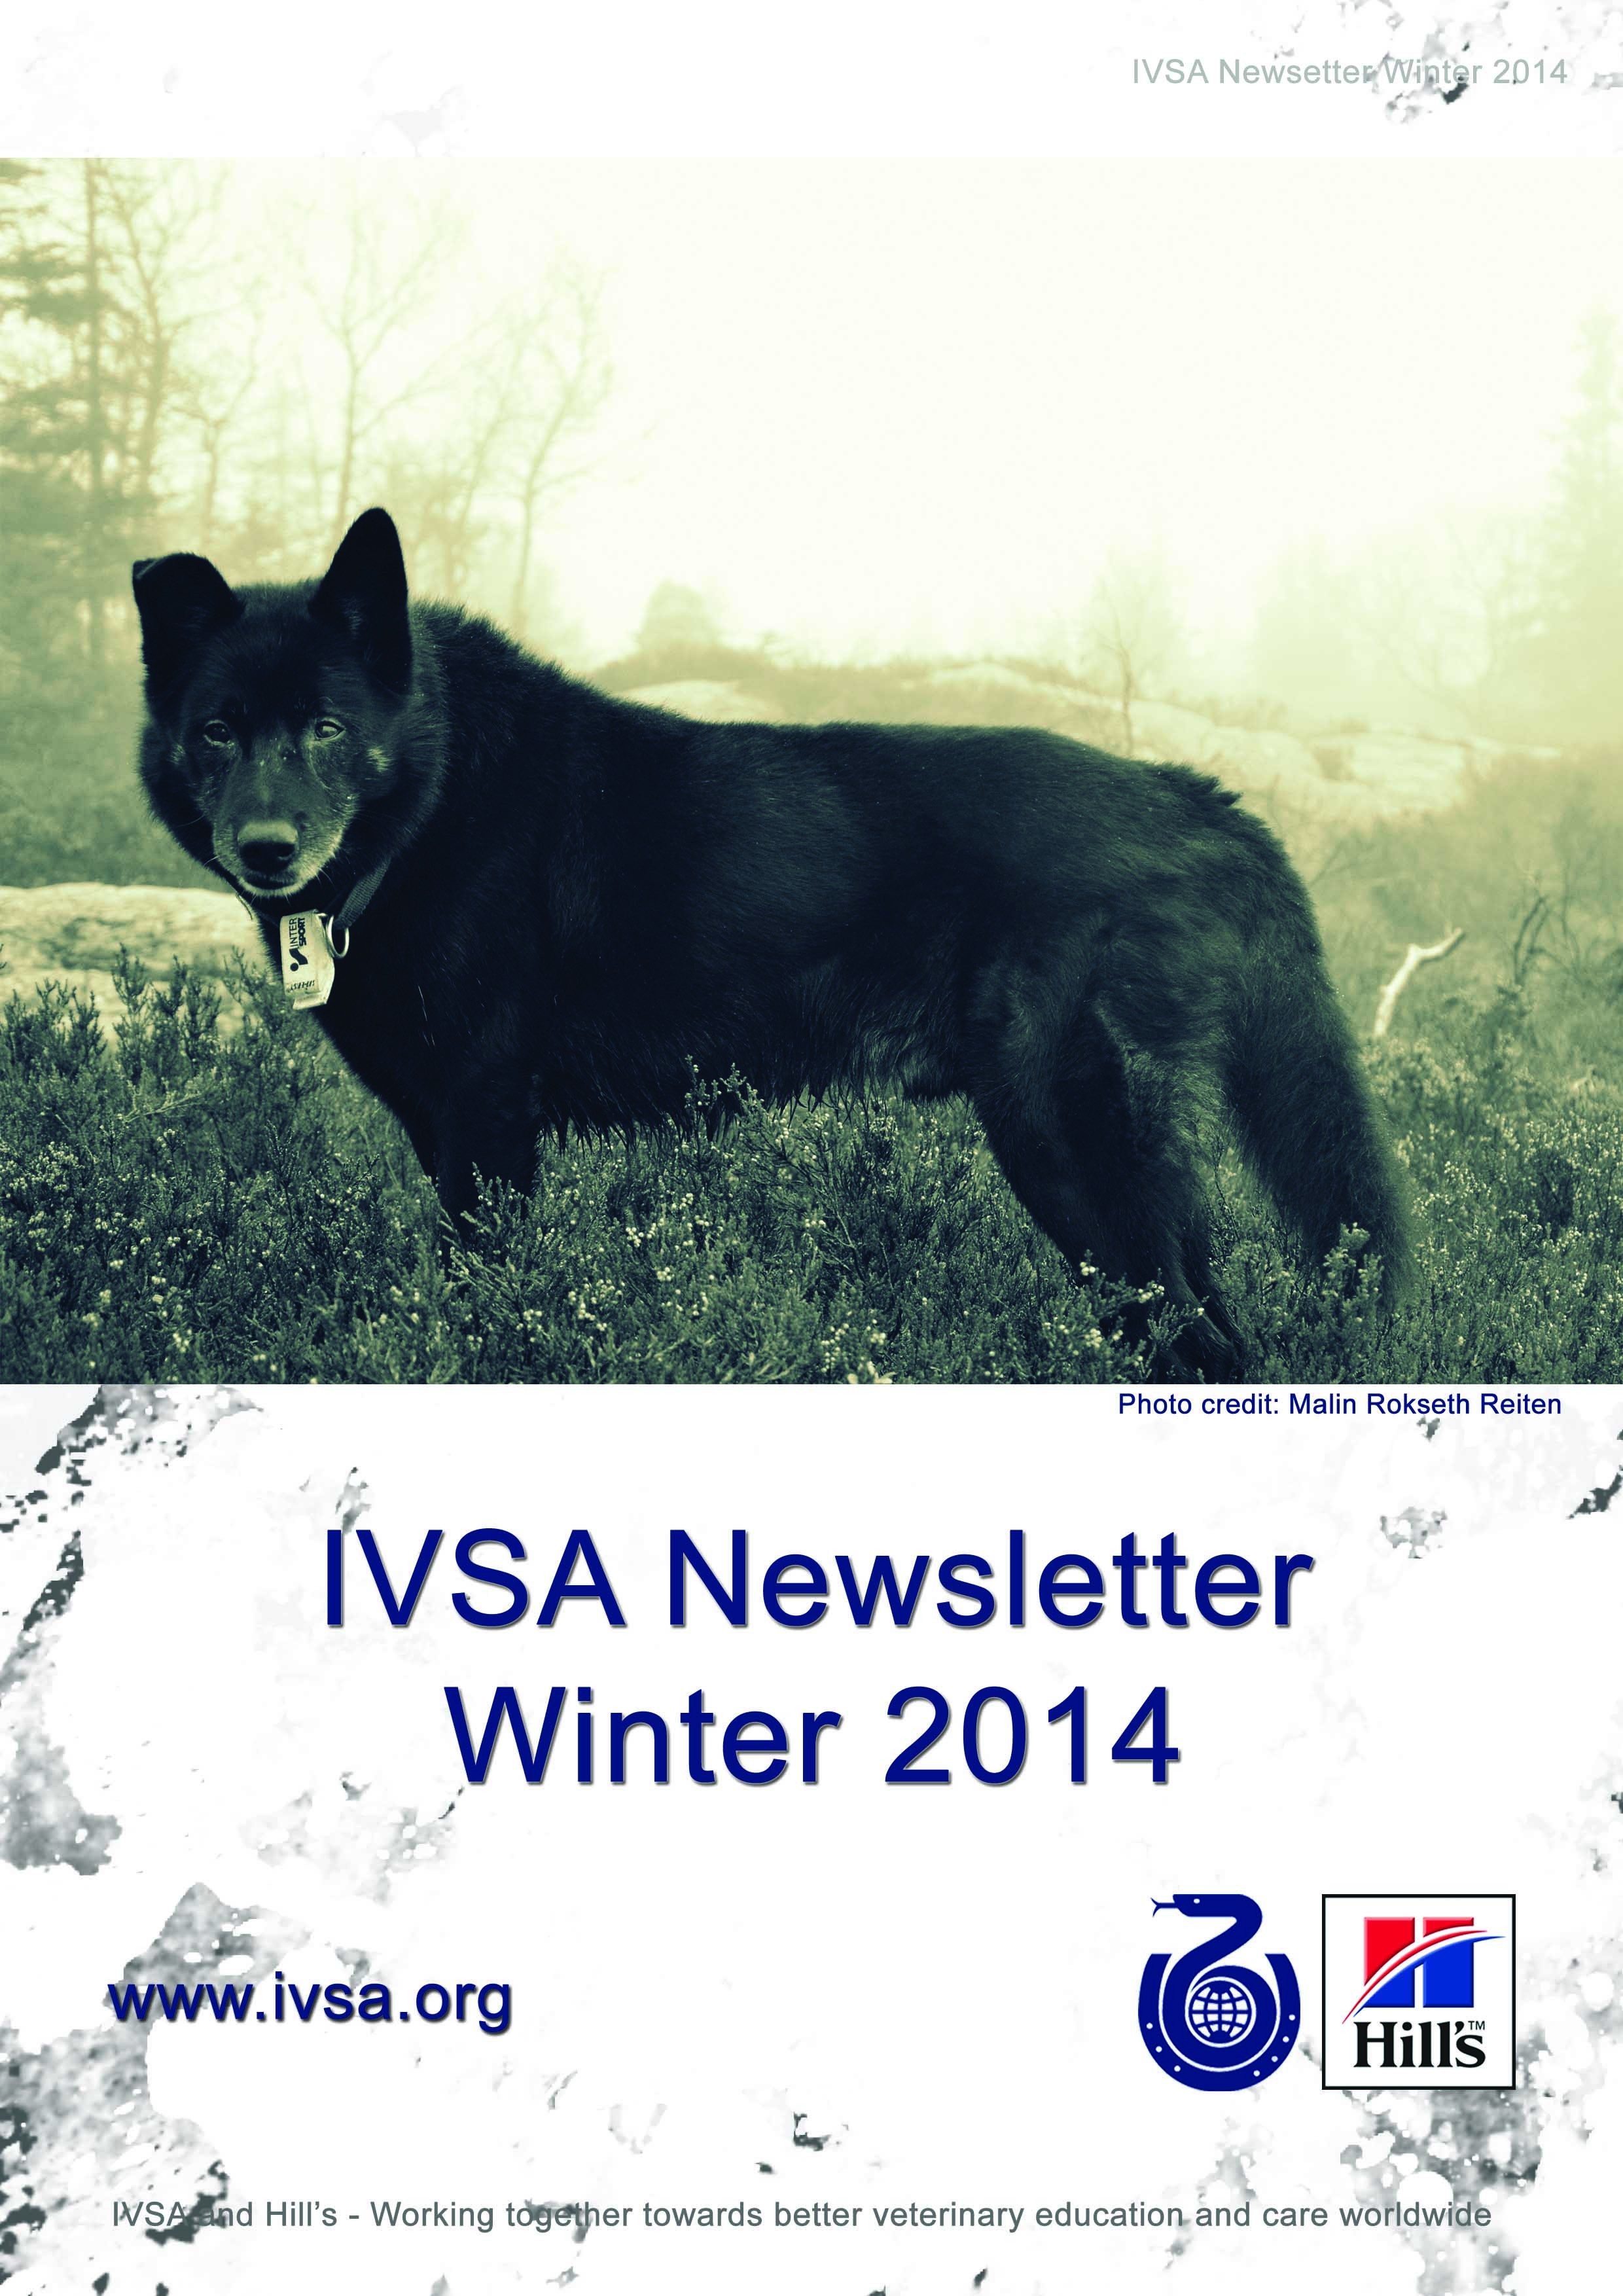 IVSA Newsletter Autumn 2013